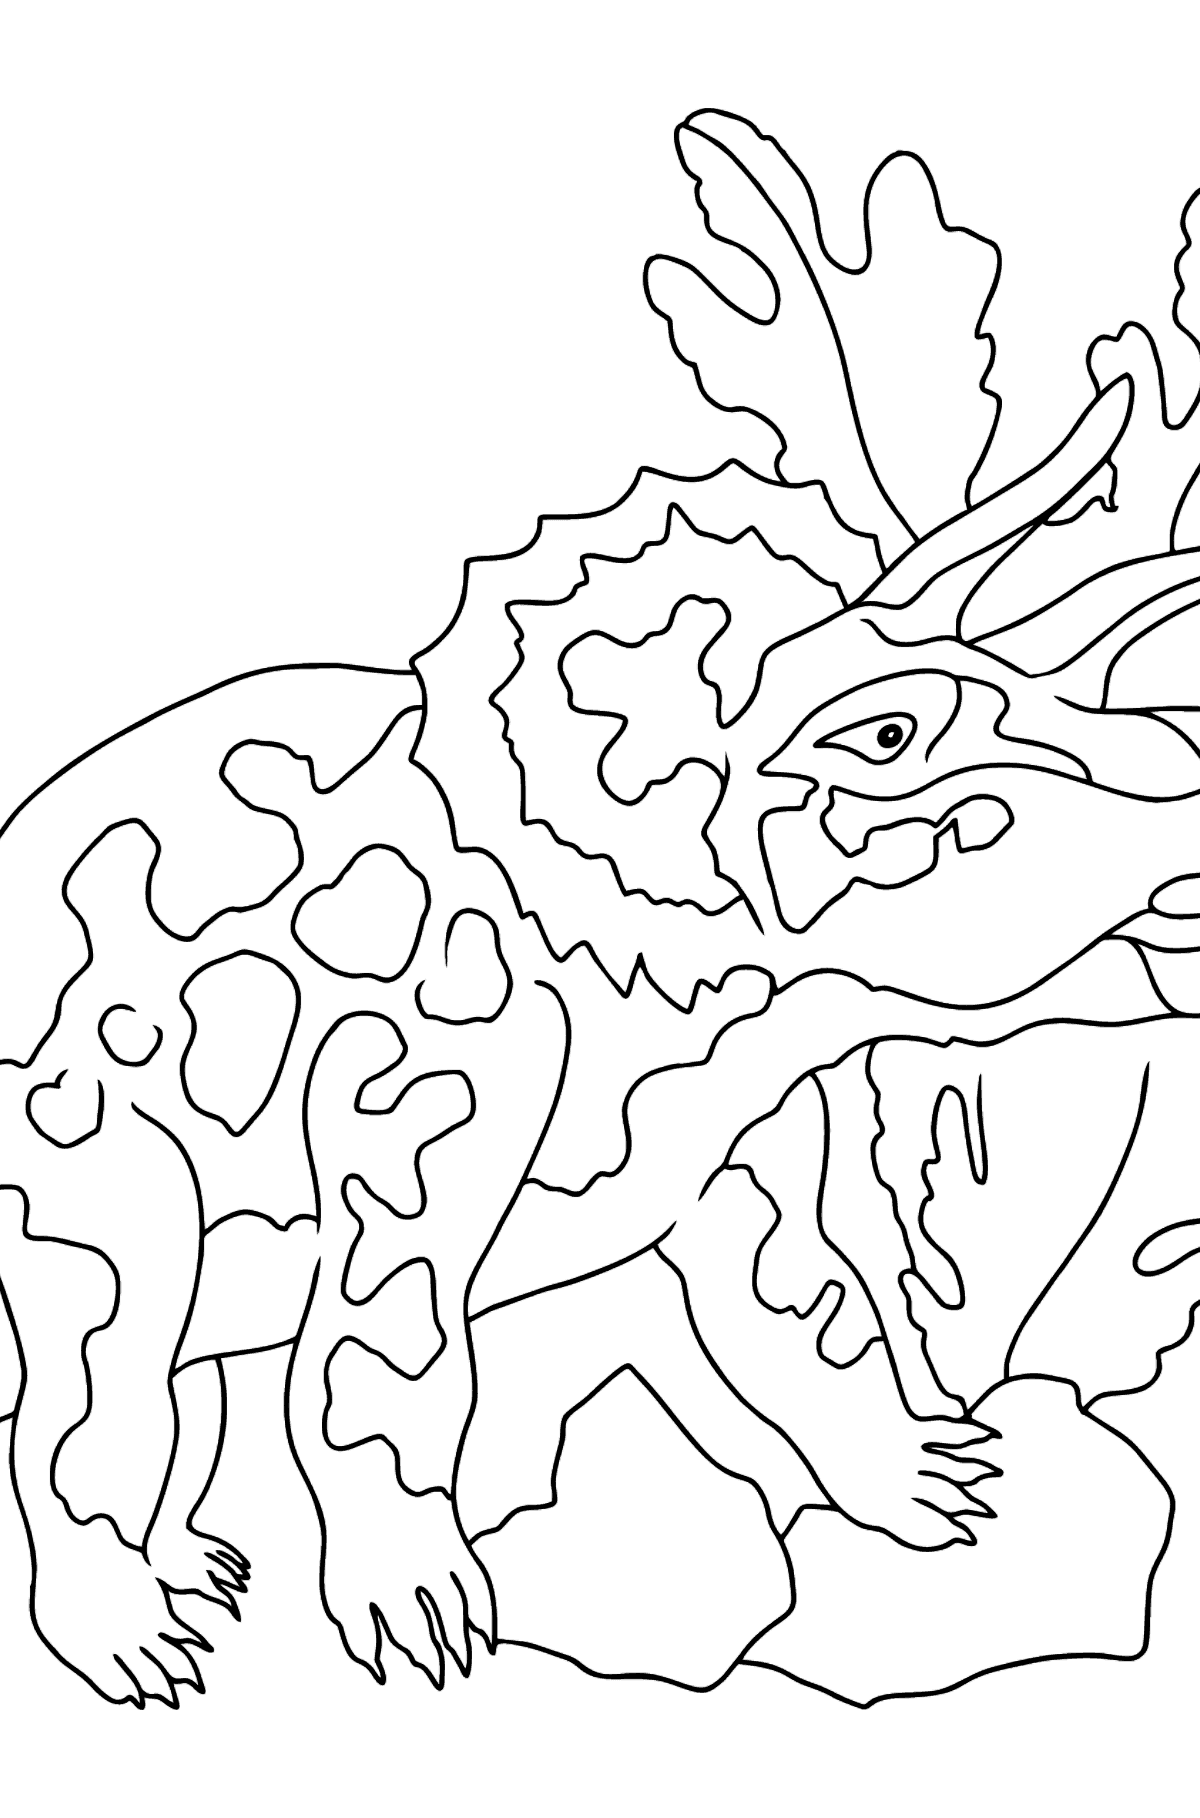 Coloring Page - Triceratops - A Peaceful Horned Dinosaur - Coloring Pages for Kids